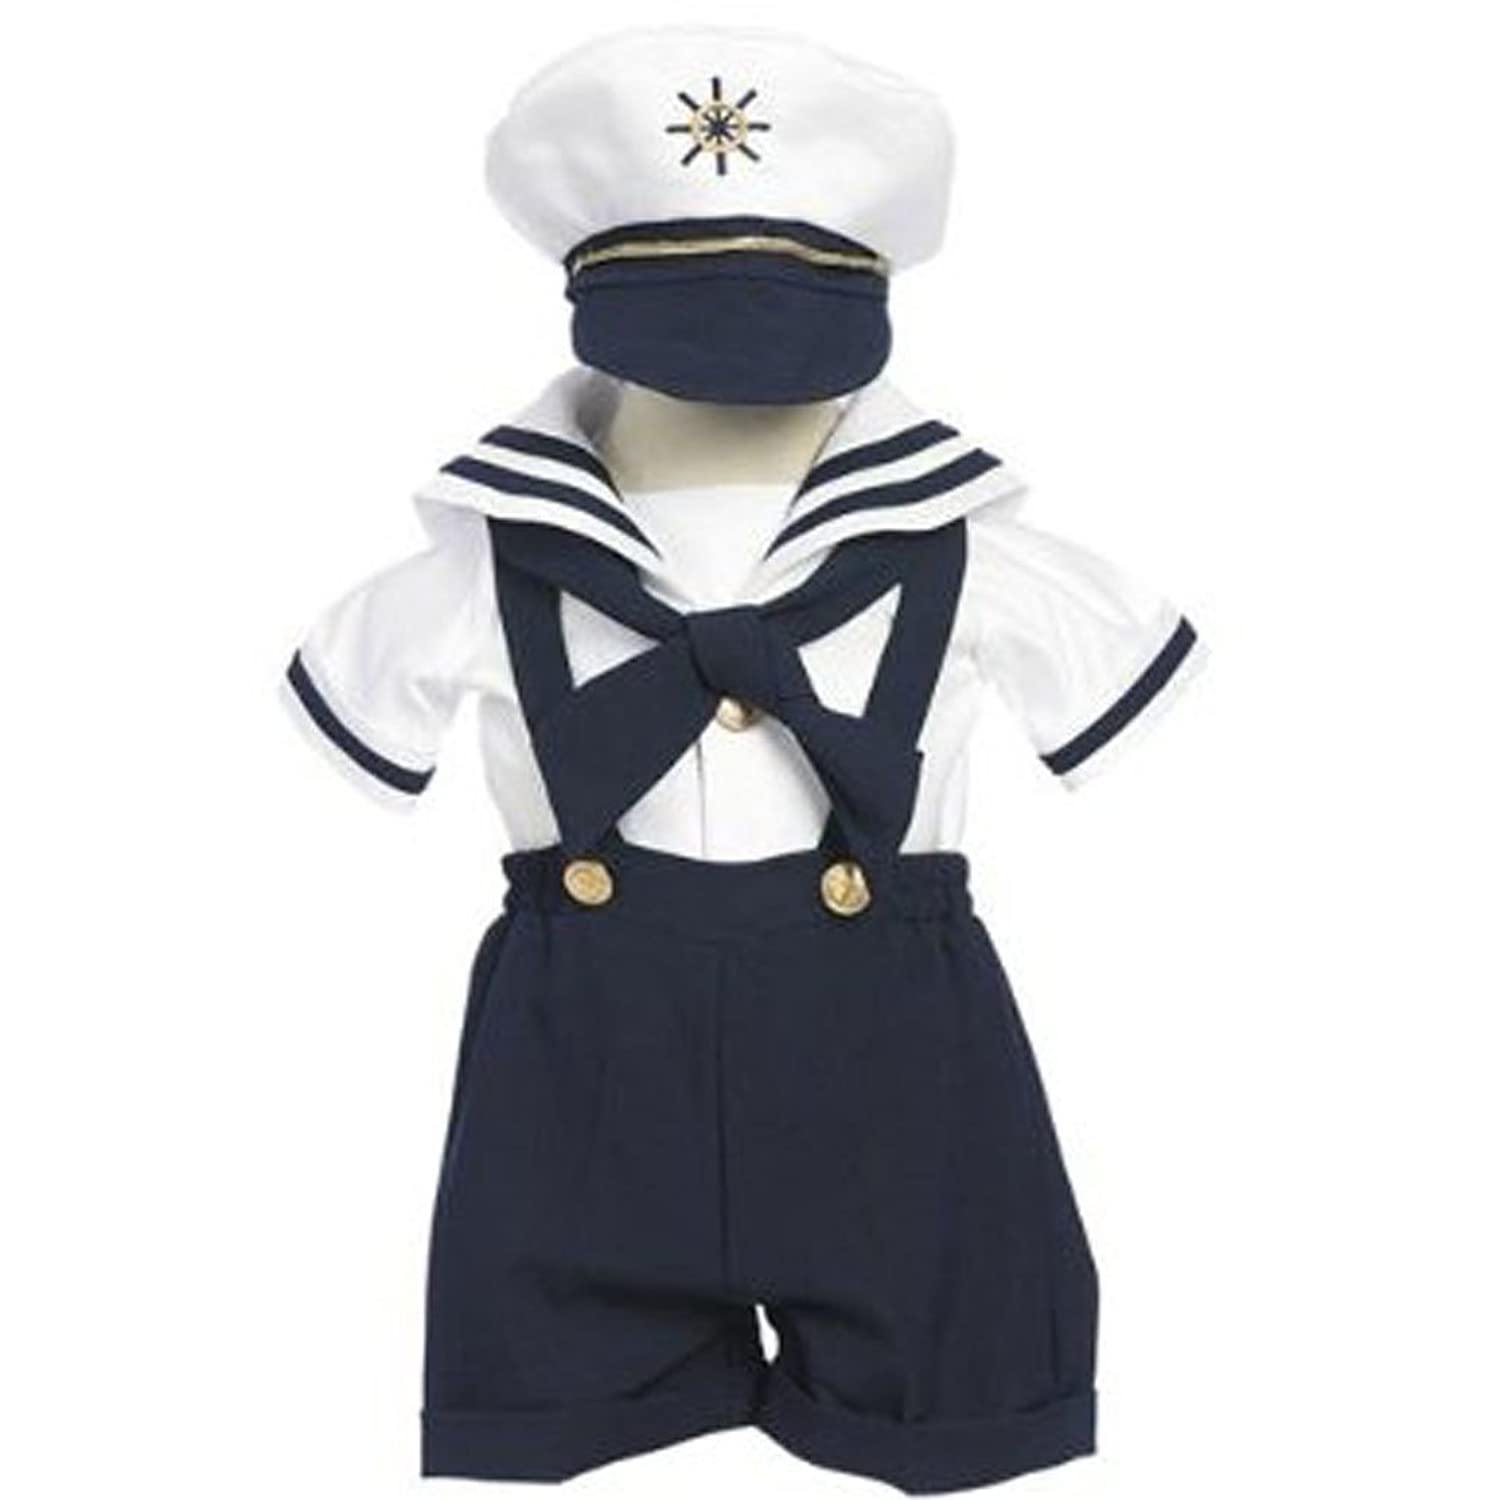 1940s Children's Clothing: Girls, Boys, Baby, Toddler Classykidzshop Navy Sailor Boy Shirt Shorts Tie and Hat (Baby) $30.00 AT vintagedancer.com